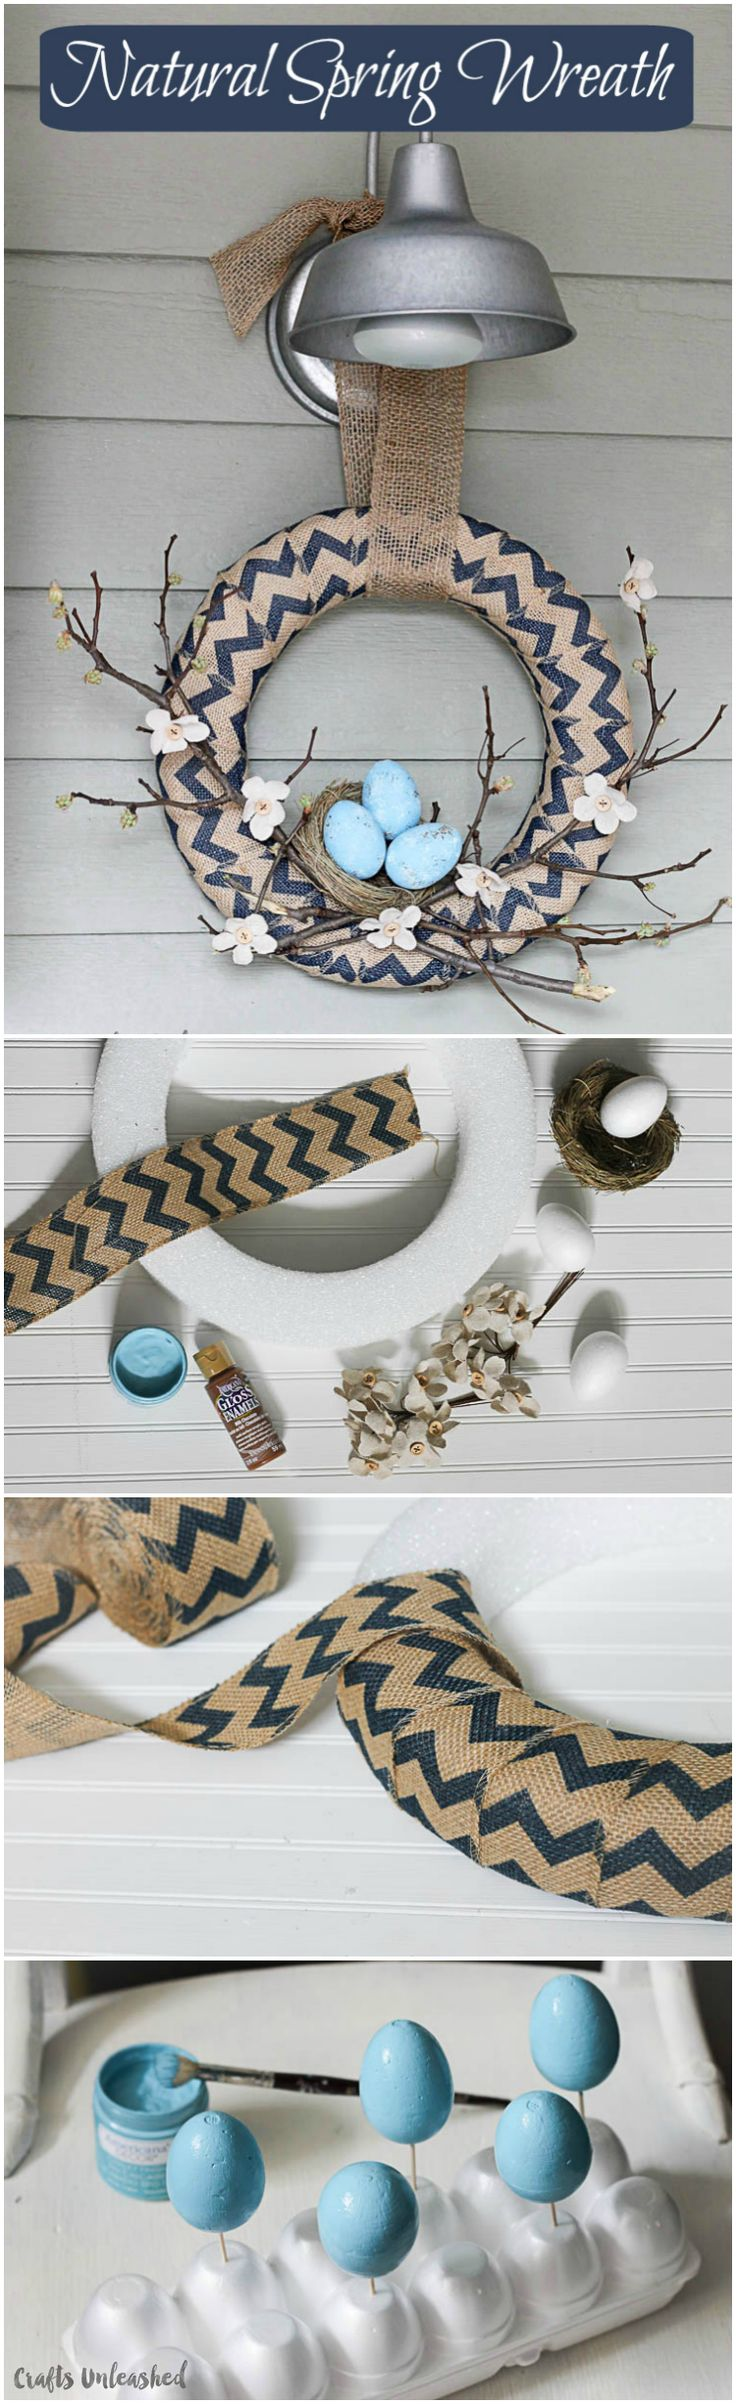 If you're looking for a wreath to take you through Easter into the spring season, this natural spring wreath DIY tutorial is the perfect pick!